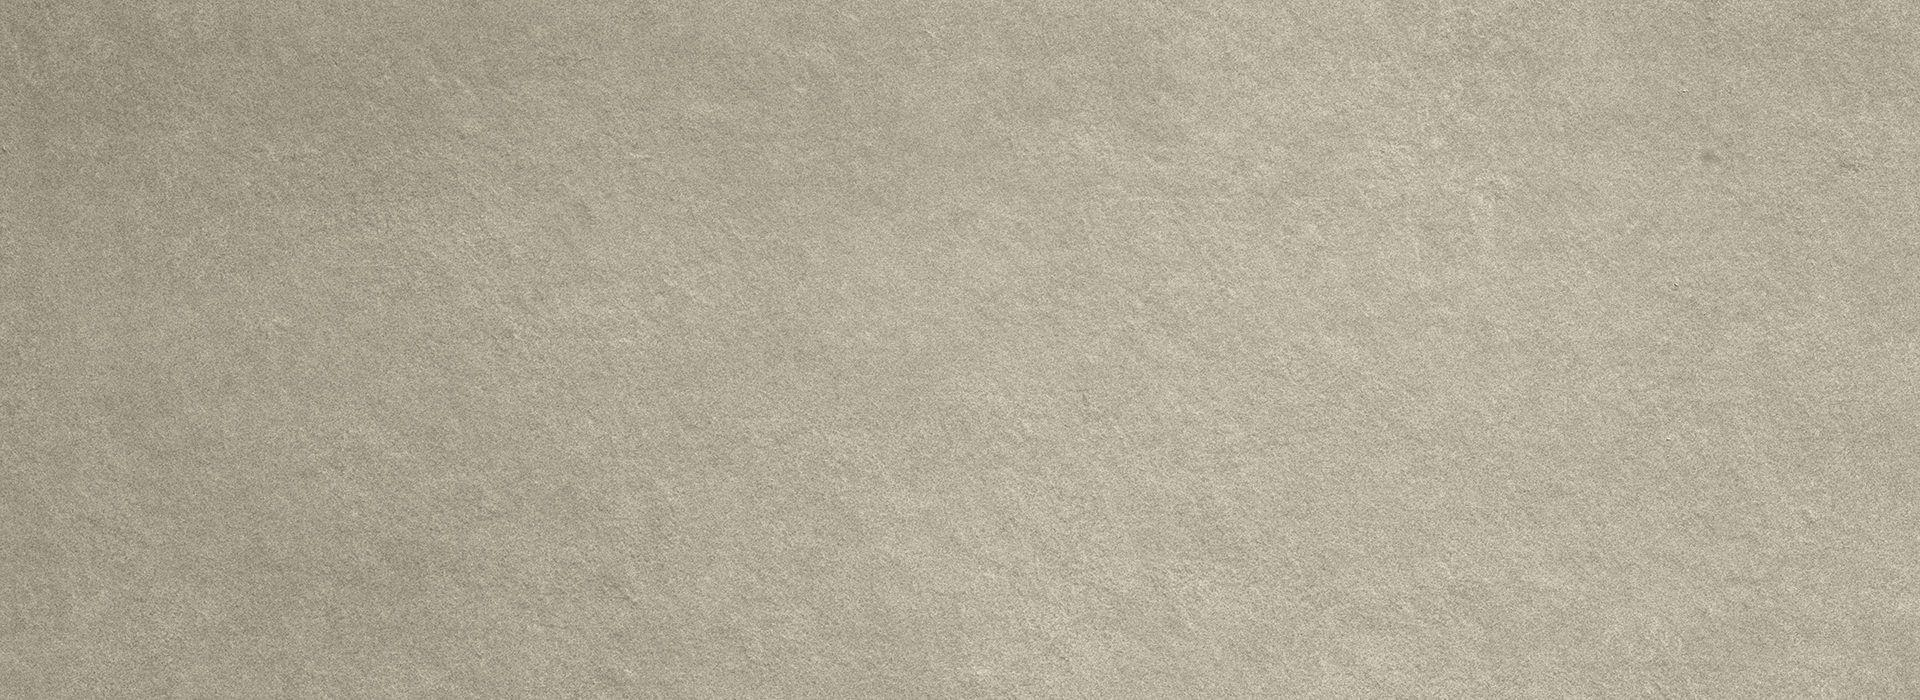 Shade Cream Shade Porcelain Tiles - Feinsteinfliesen 60x60